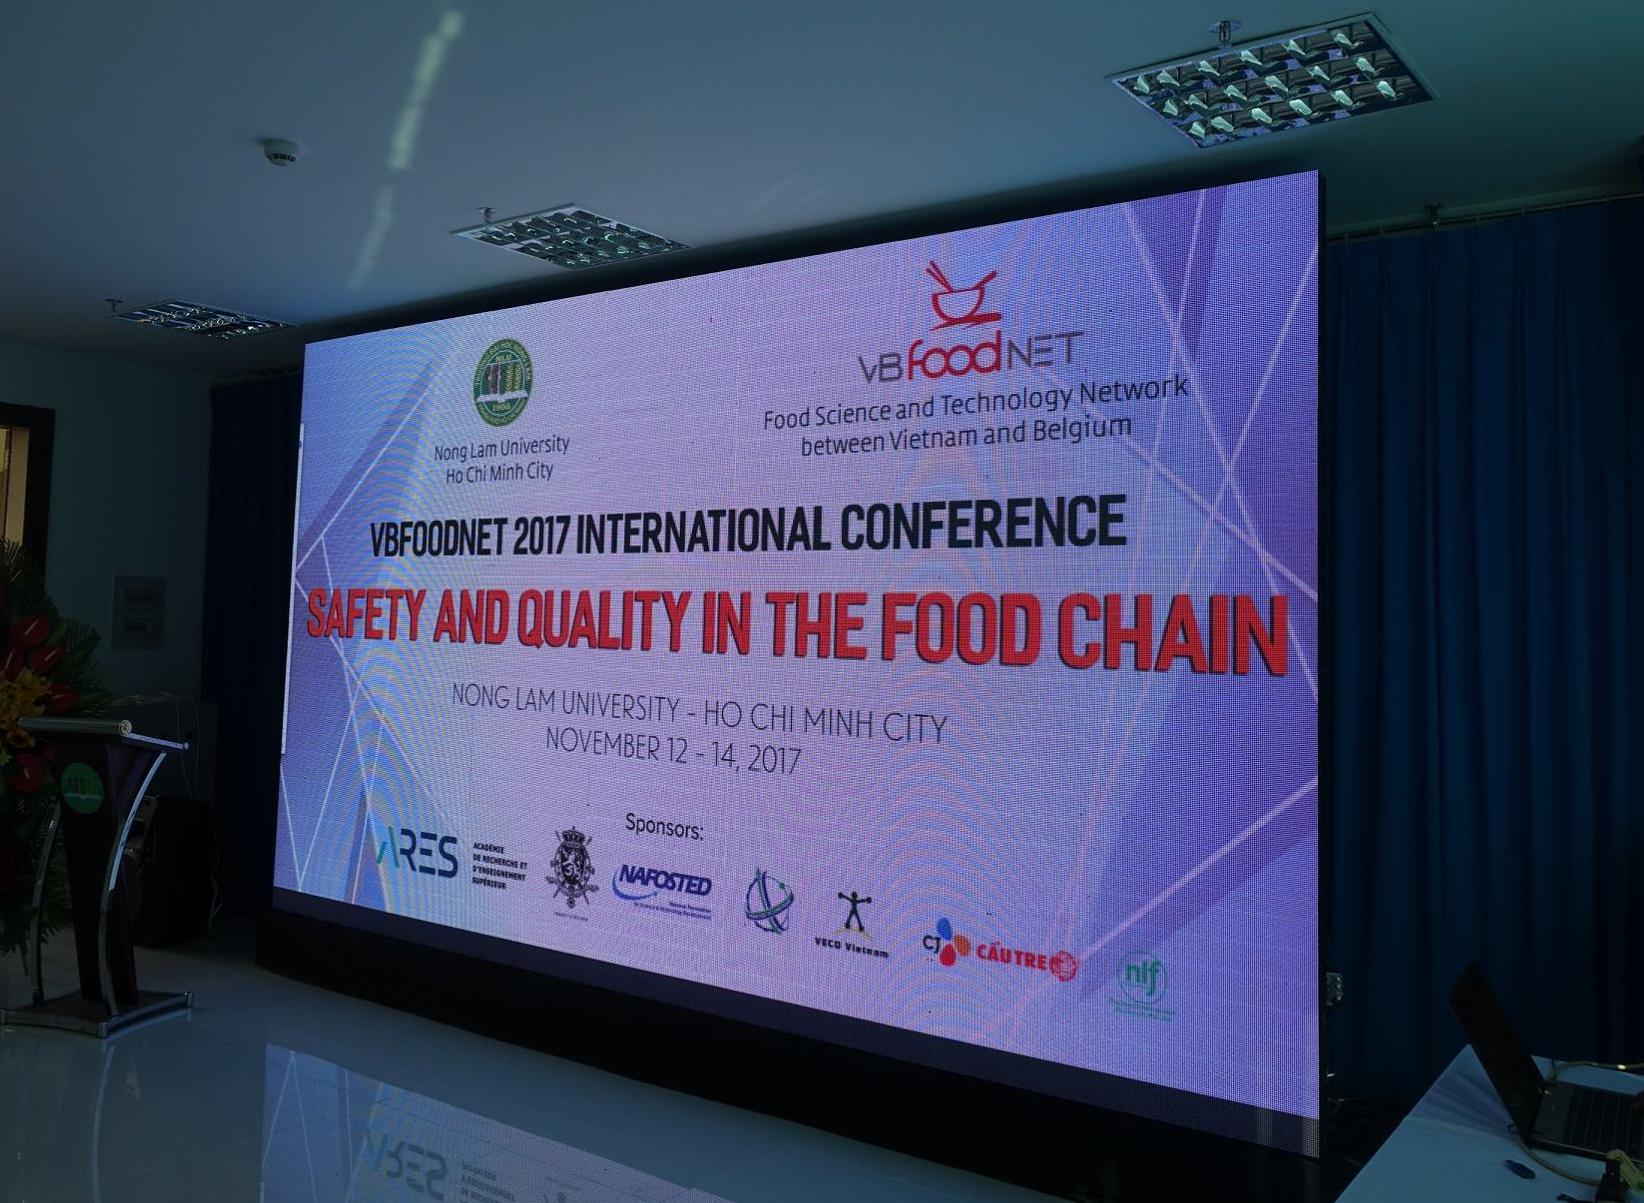 The 5th Conference of the Food Science and Technology Network between Vietnam and Belgium (VBFoodNET) took place on 13 and 14 November at Nong Lam University in Ho Chi Minh City (Photo: Rikolto)